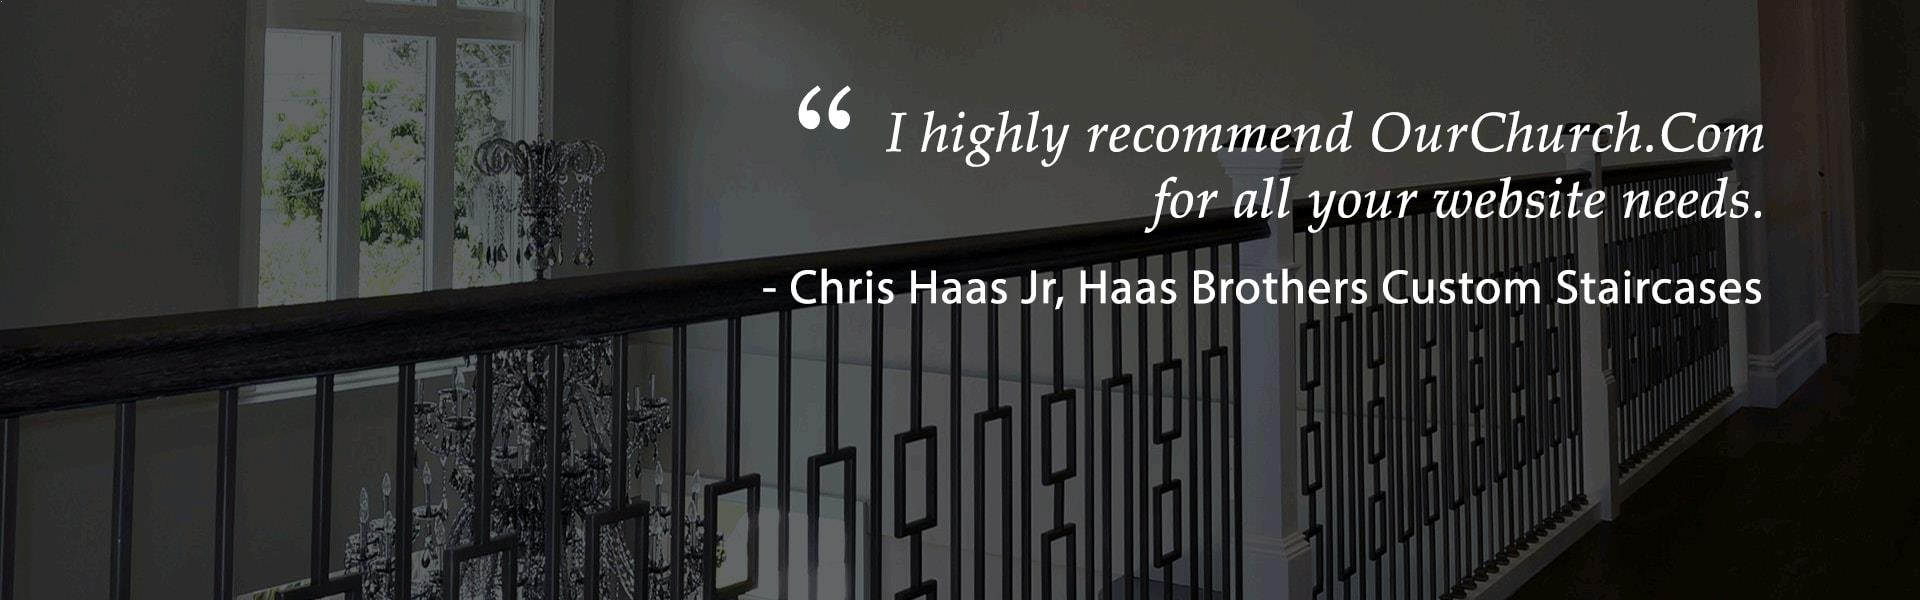 haas christian website design quote